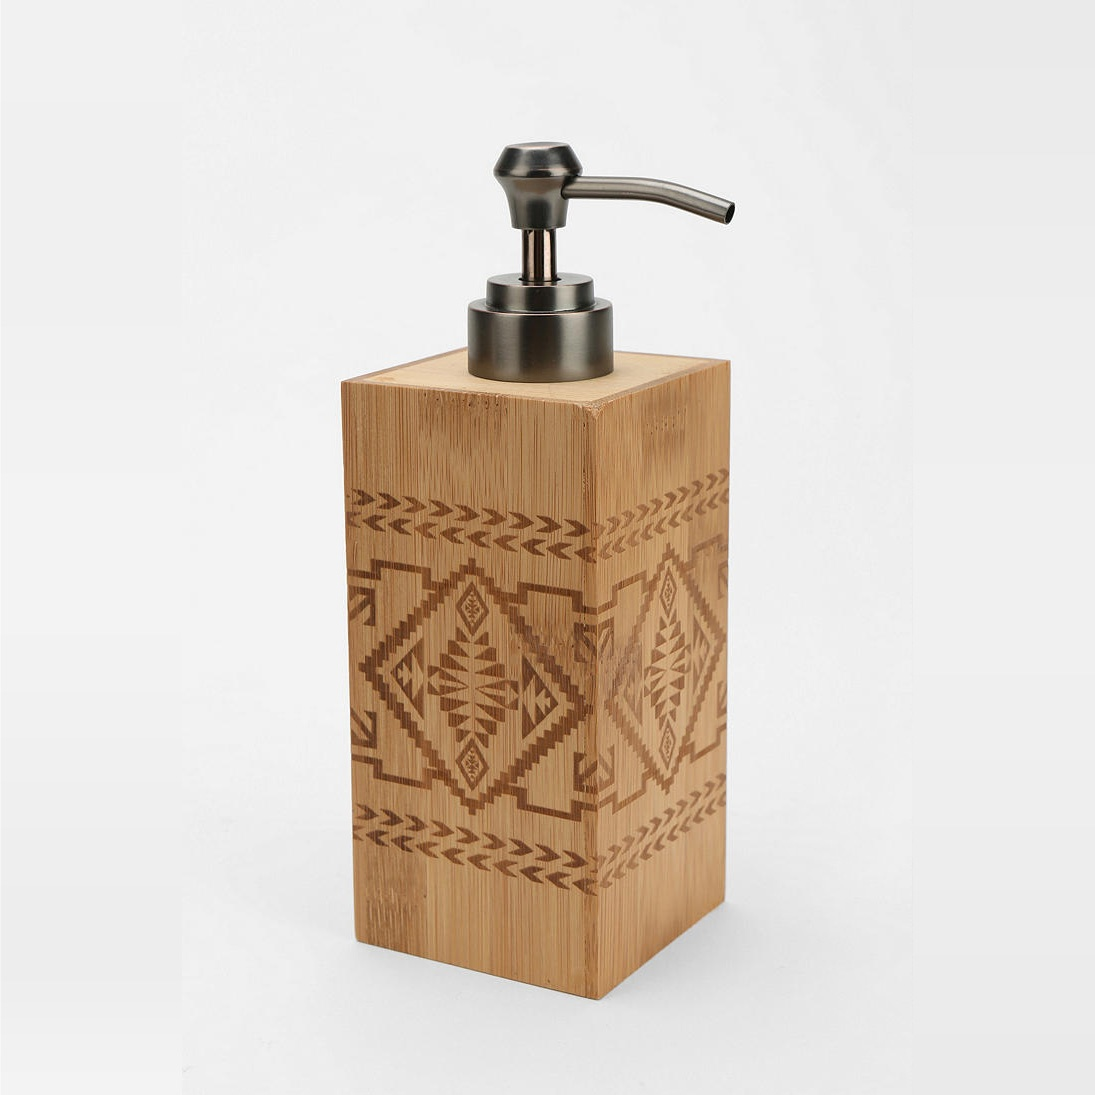 Диспенсер для мыла Bamboo Soap DispenserАксессуары<br><br>